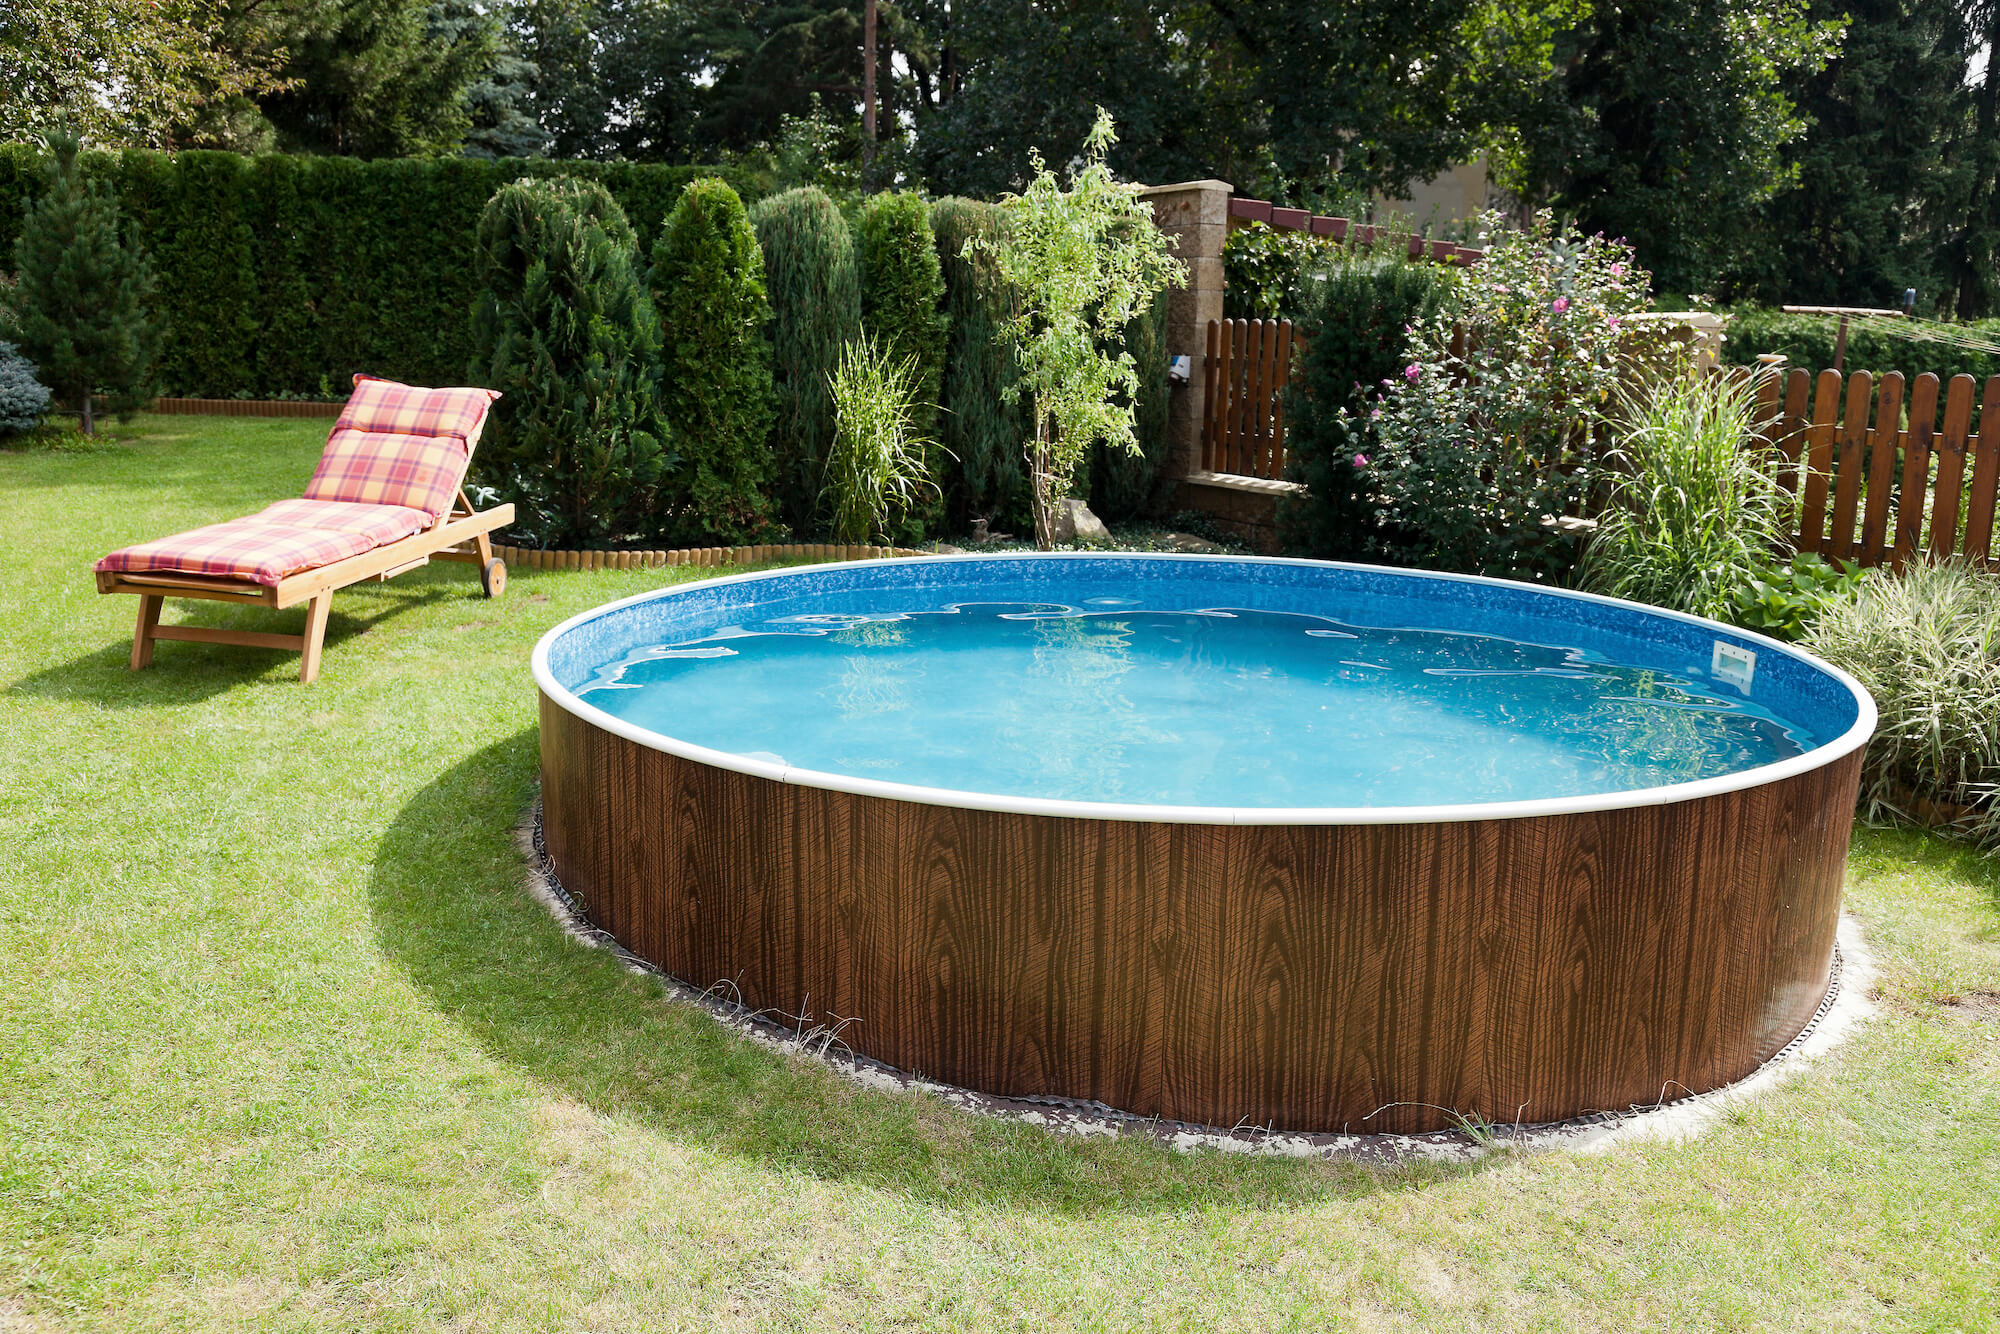 above ground pools for sale online uk 1st direct. Black Bedroom Furniture Sets. Home Design Ideas